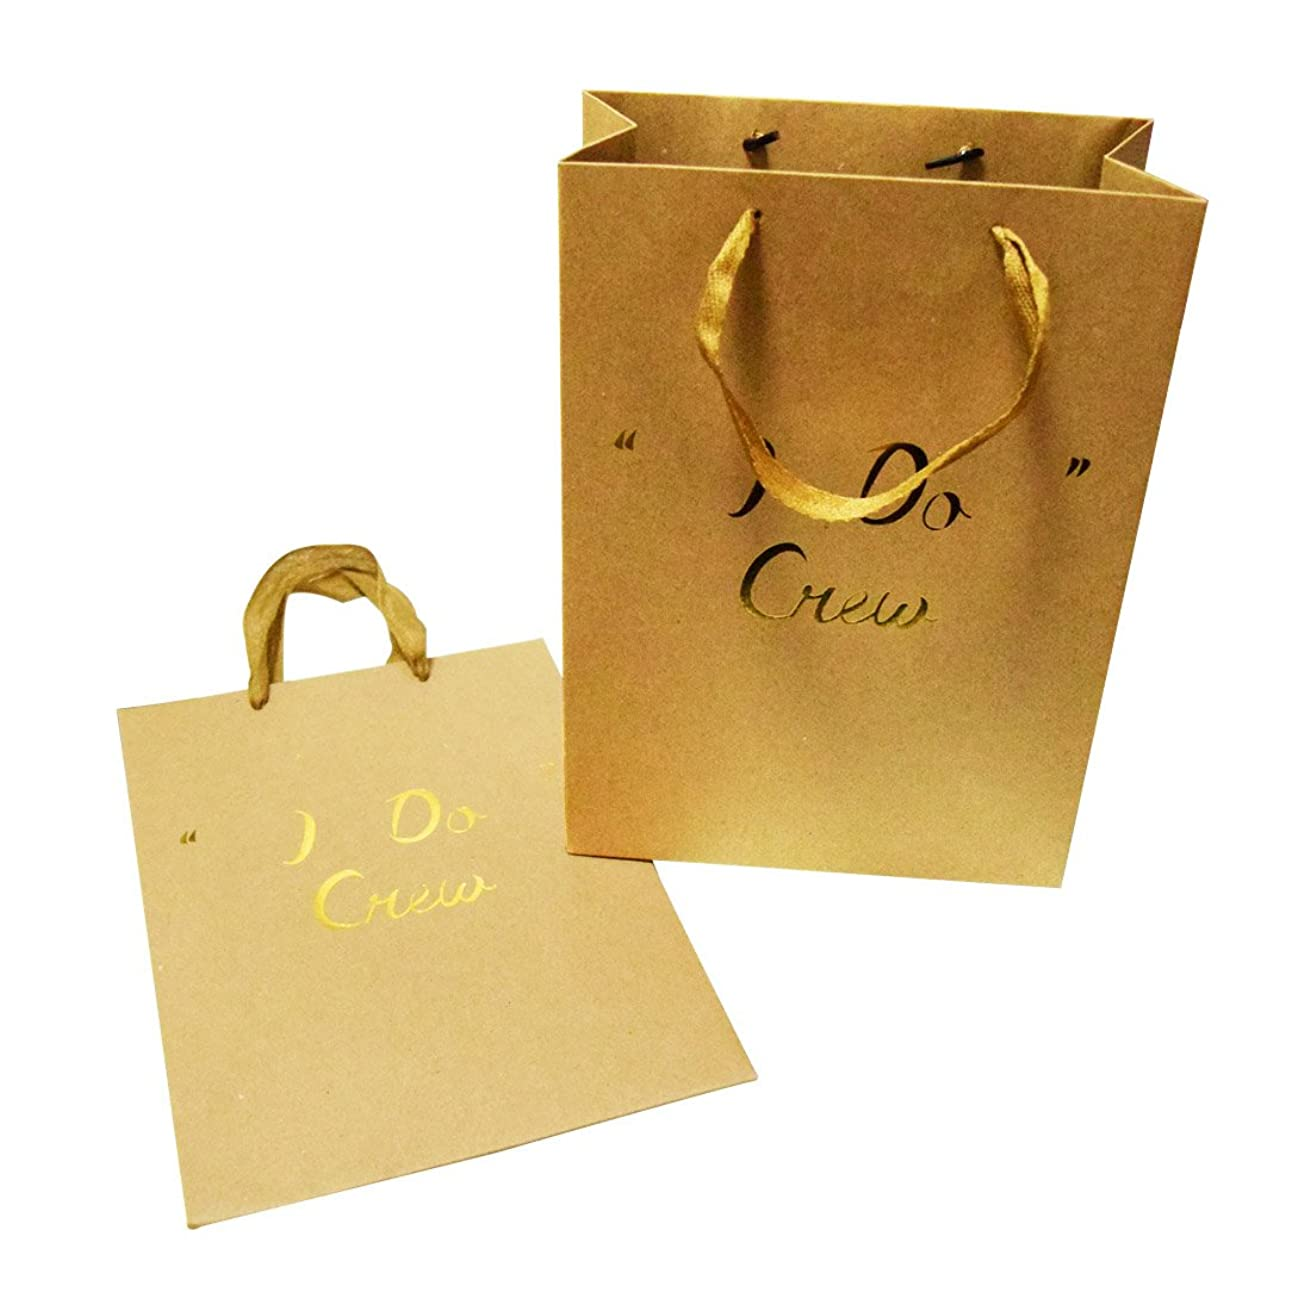 FOONEA I Do Crew Kraft Paper Bags Gift Bags Party Favor Bags Set of 10 with Handles for Hotel Guests Wedding Favors Bridesmaid Graduation Gift Birthday Party Bridal Baby Boy Girl Shower